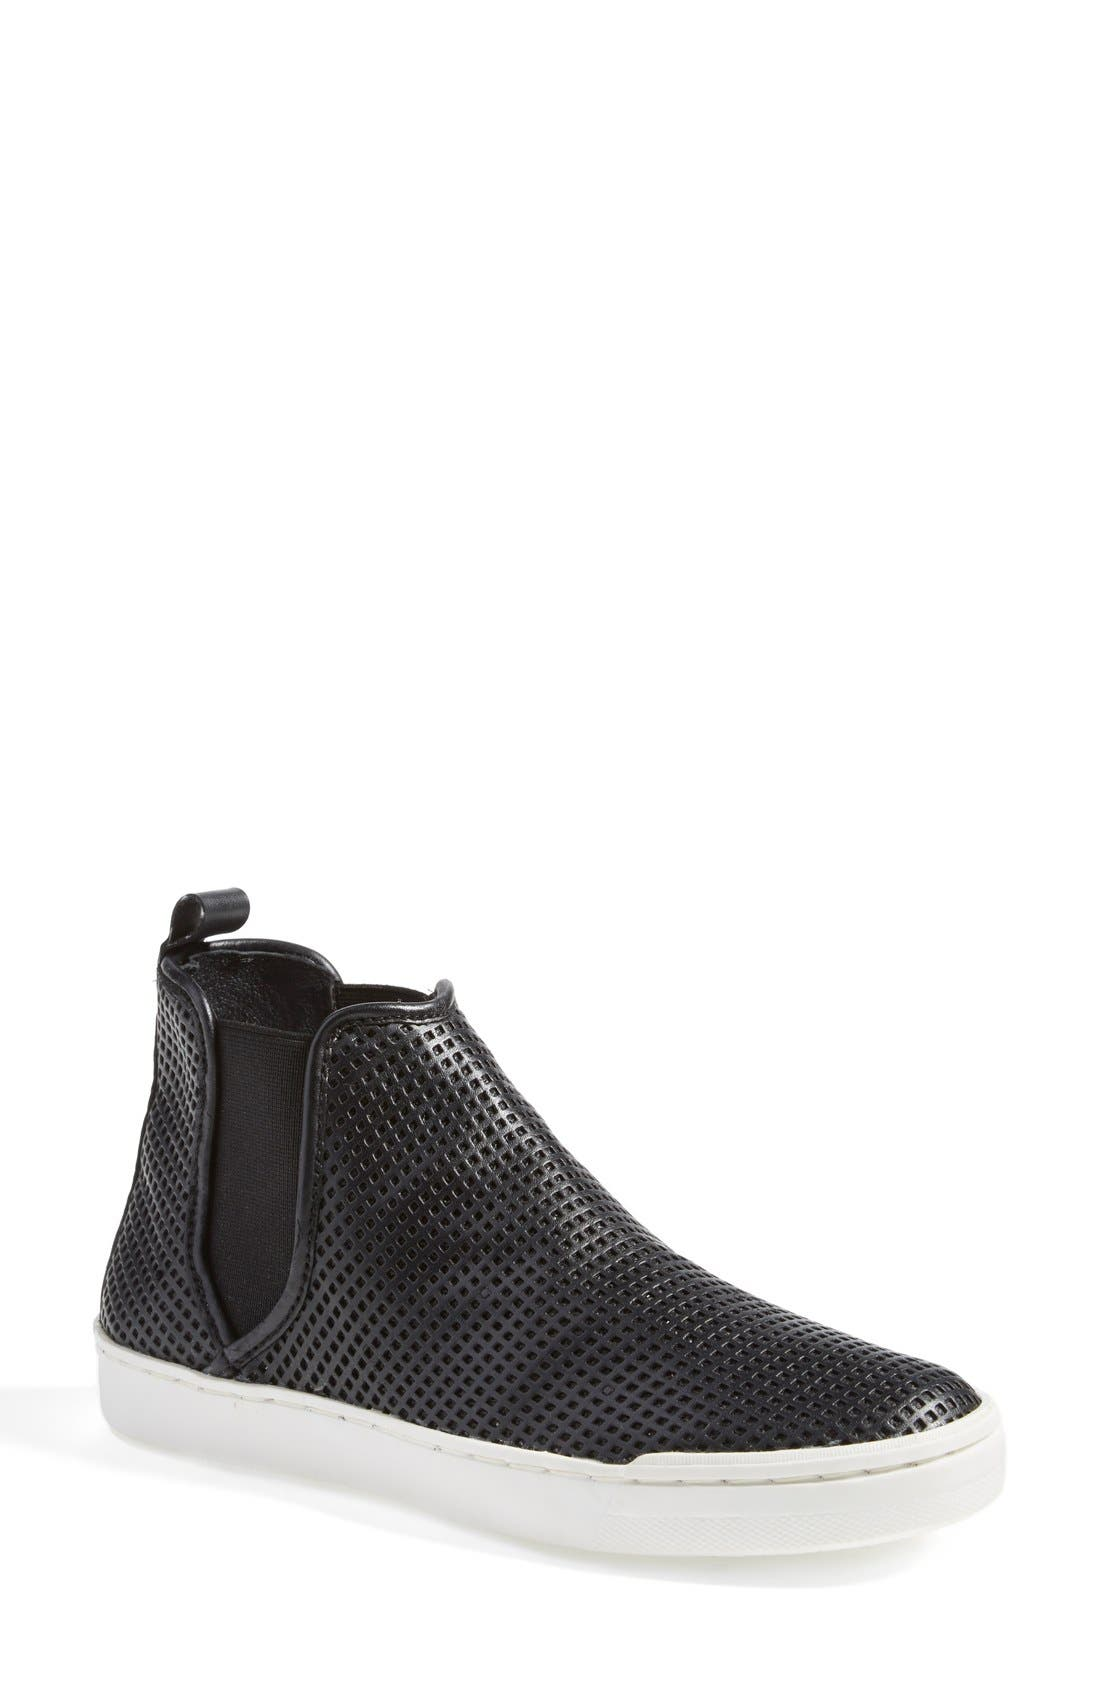 Alternate Image 1 Selected - Steve Madden 'Elvinn' Sneaker (Women)